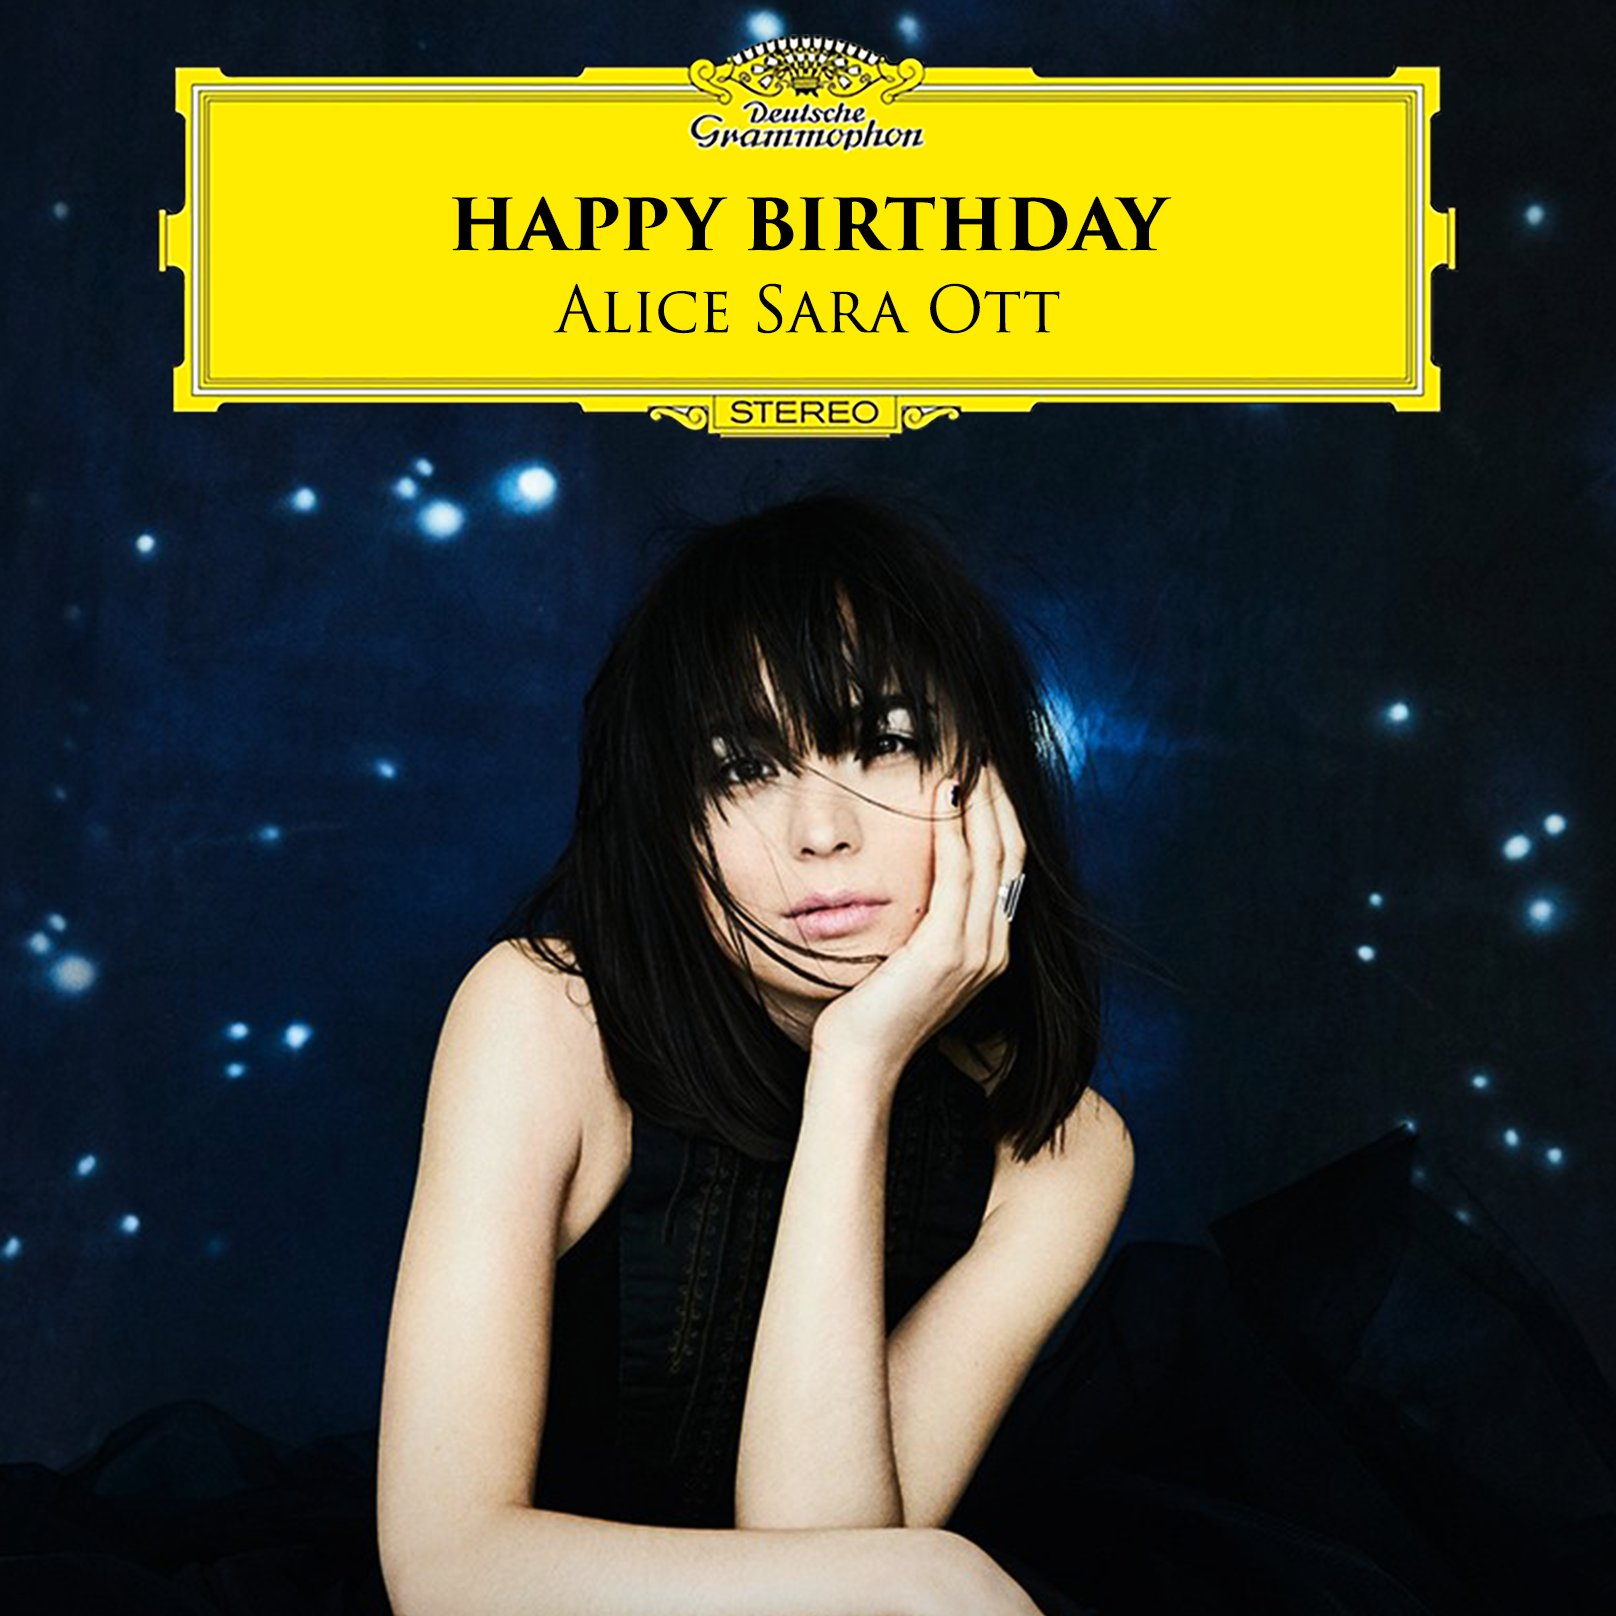 Reloaded twaddle – RT @AliceSaraOtt: #Releaseday is here!! 珞珞 It's my 10th year wit...